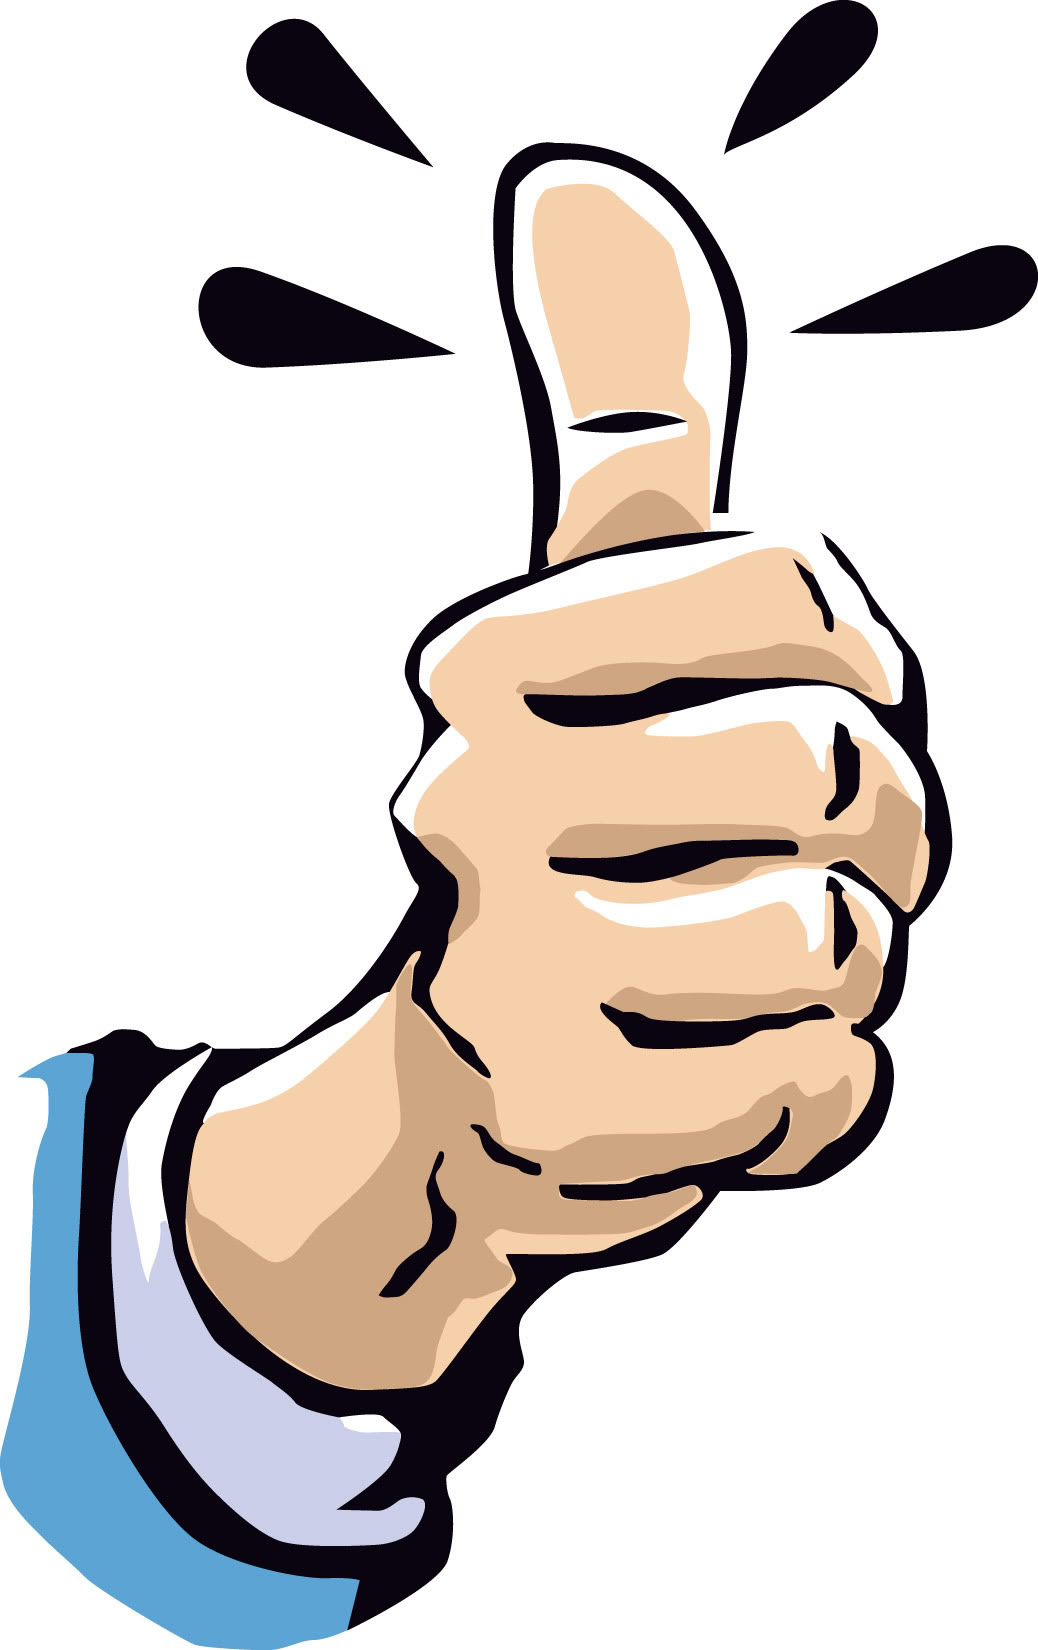 Thumbs Up Thumb Up Clip Art Clipart Clipartix.